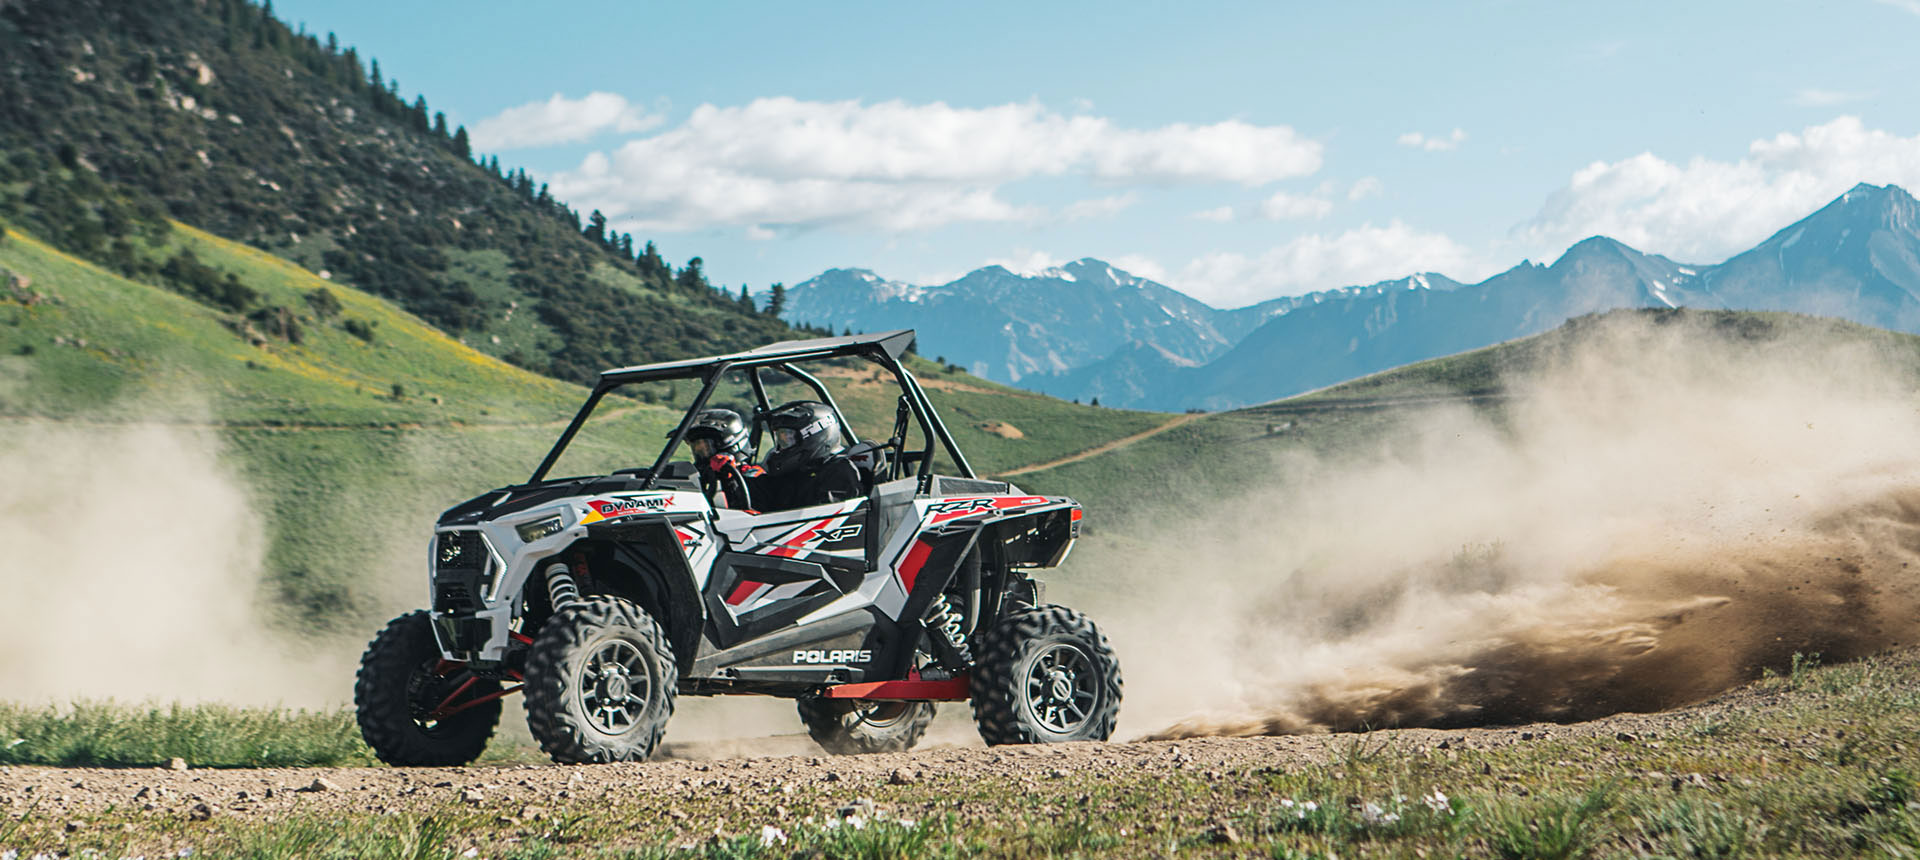 2019 Polaris RZR XP 1000 in Milford, New Hampshire